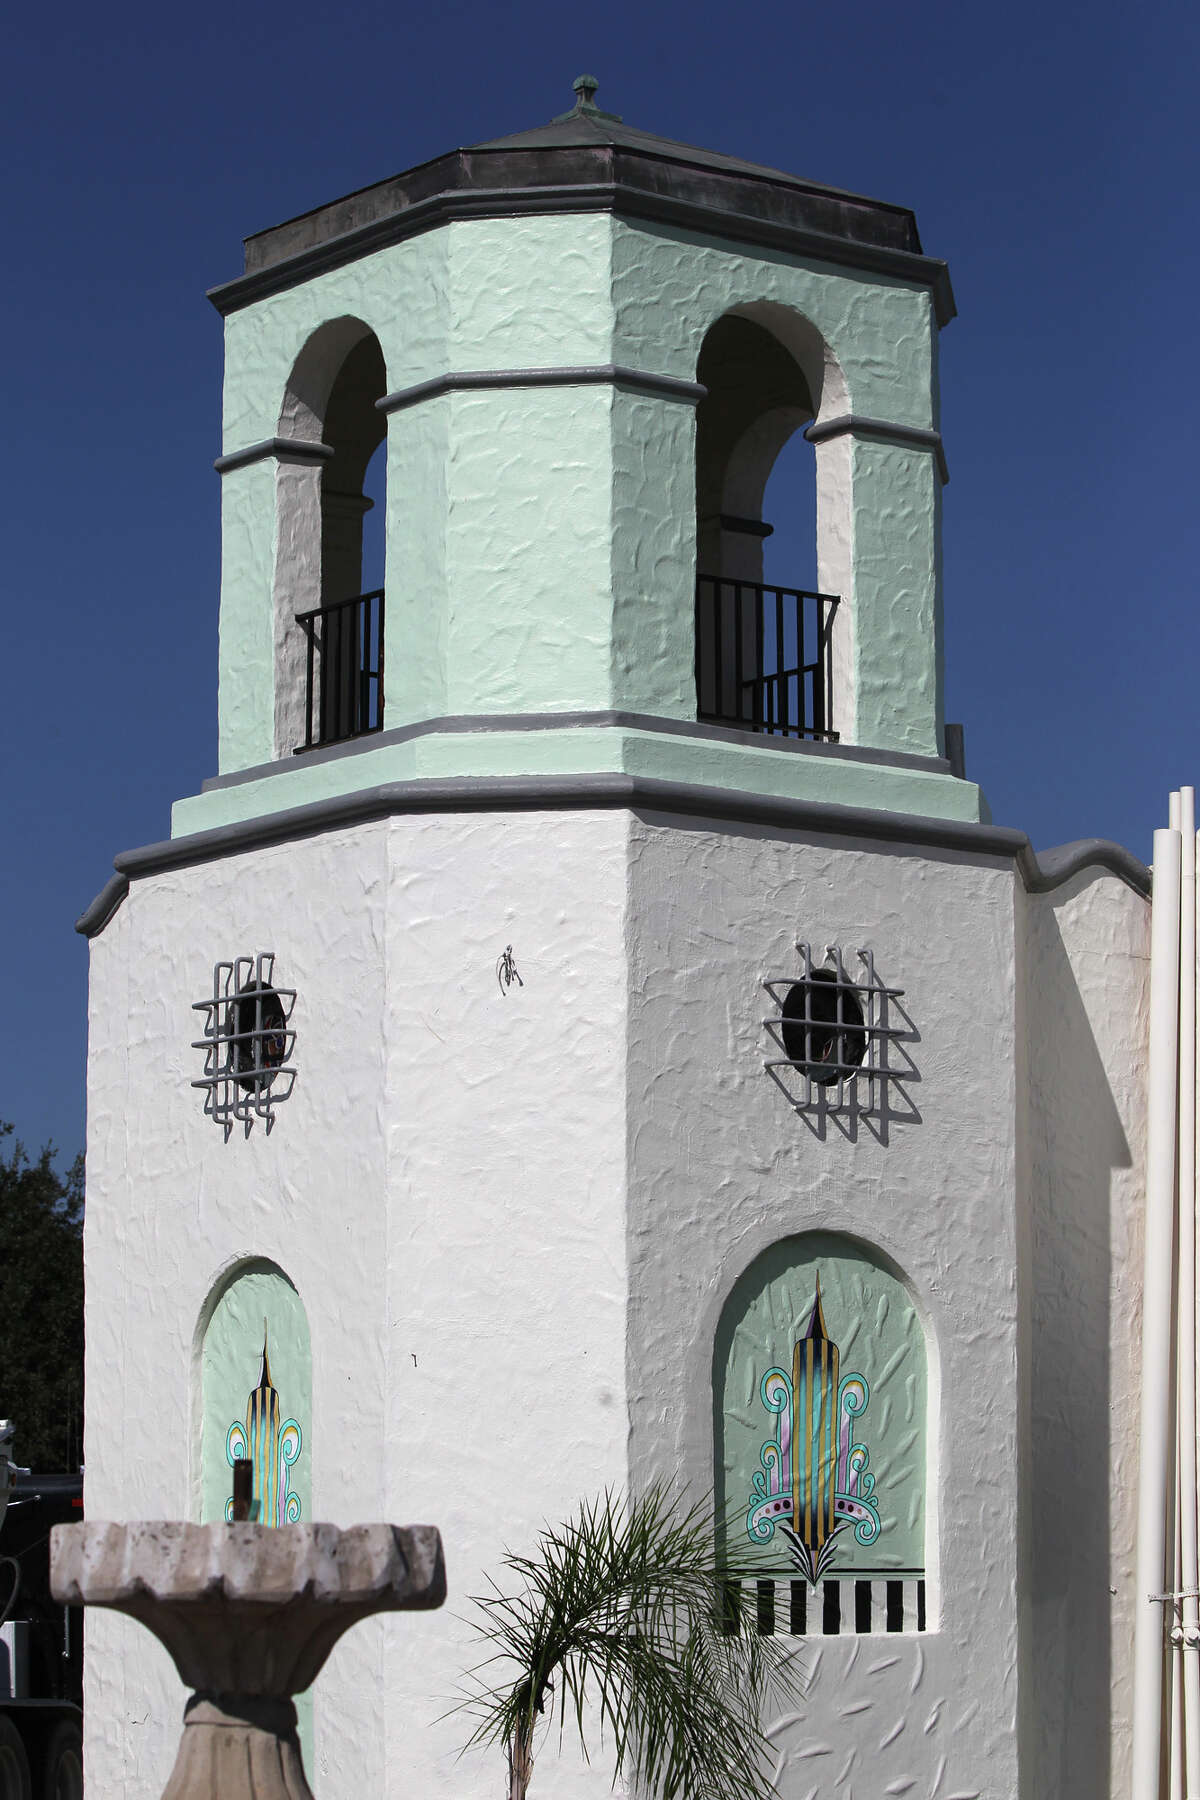 This is a small tower connected to the Deco Pizzeria at 1815 Fredericksburg Road. The pizzeria's owner, Jacob Valenzuela, says the building awaits City Council action on historic landmark designation. A former 1938 gas station, the bulding resembles a mini Spanish mission and has an enclosed dining area where gas pumps once stood.